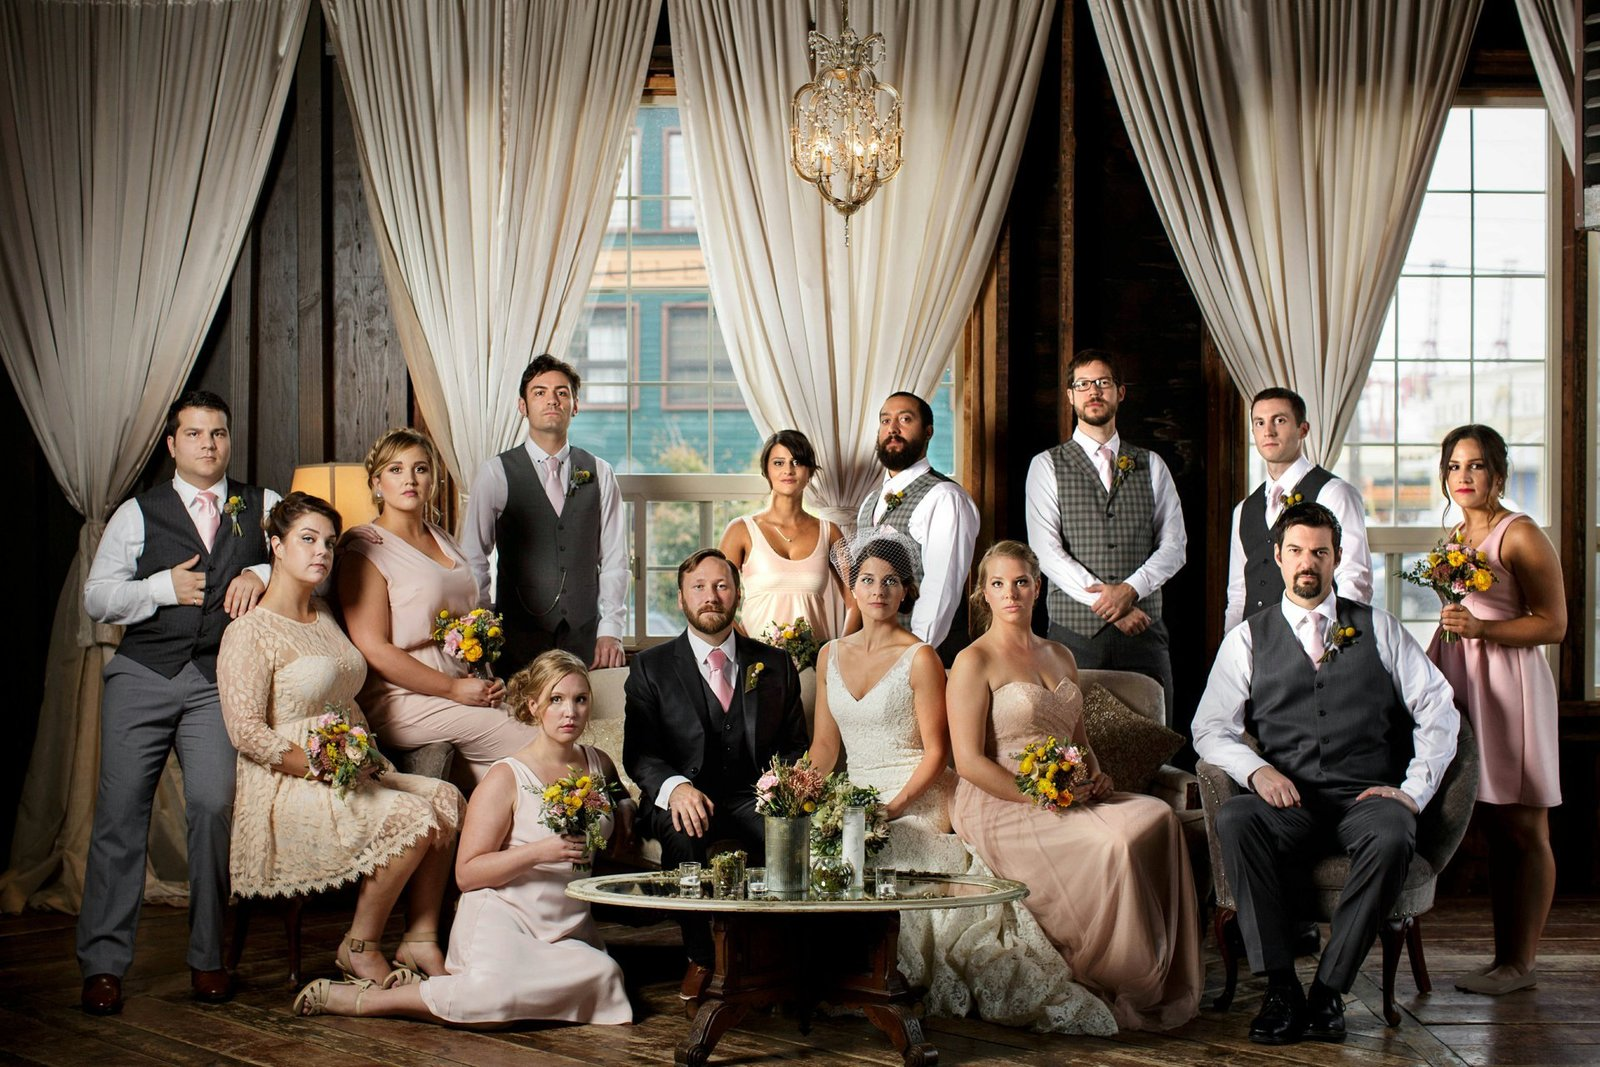 vanity-fair-bridal-party-photo-atlanta